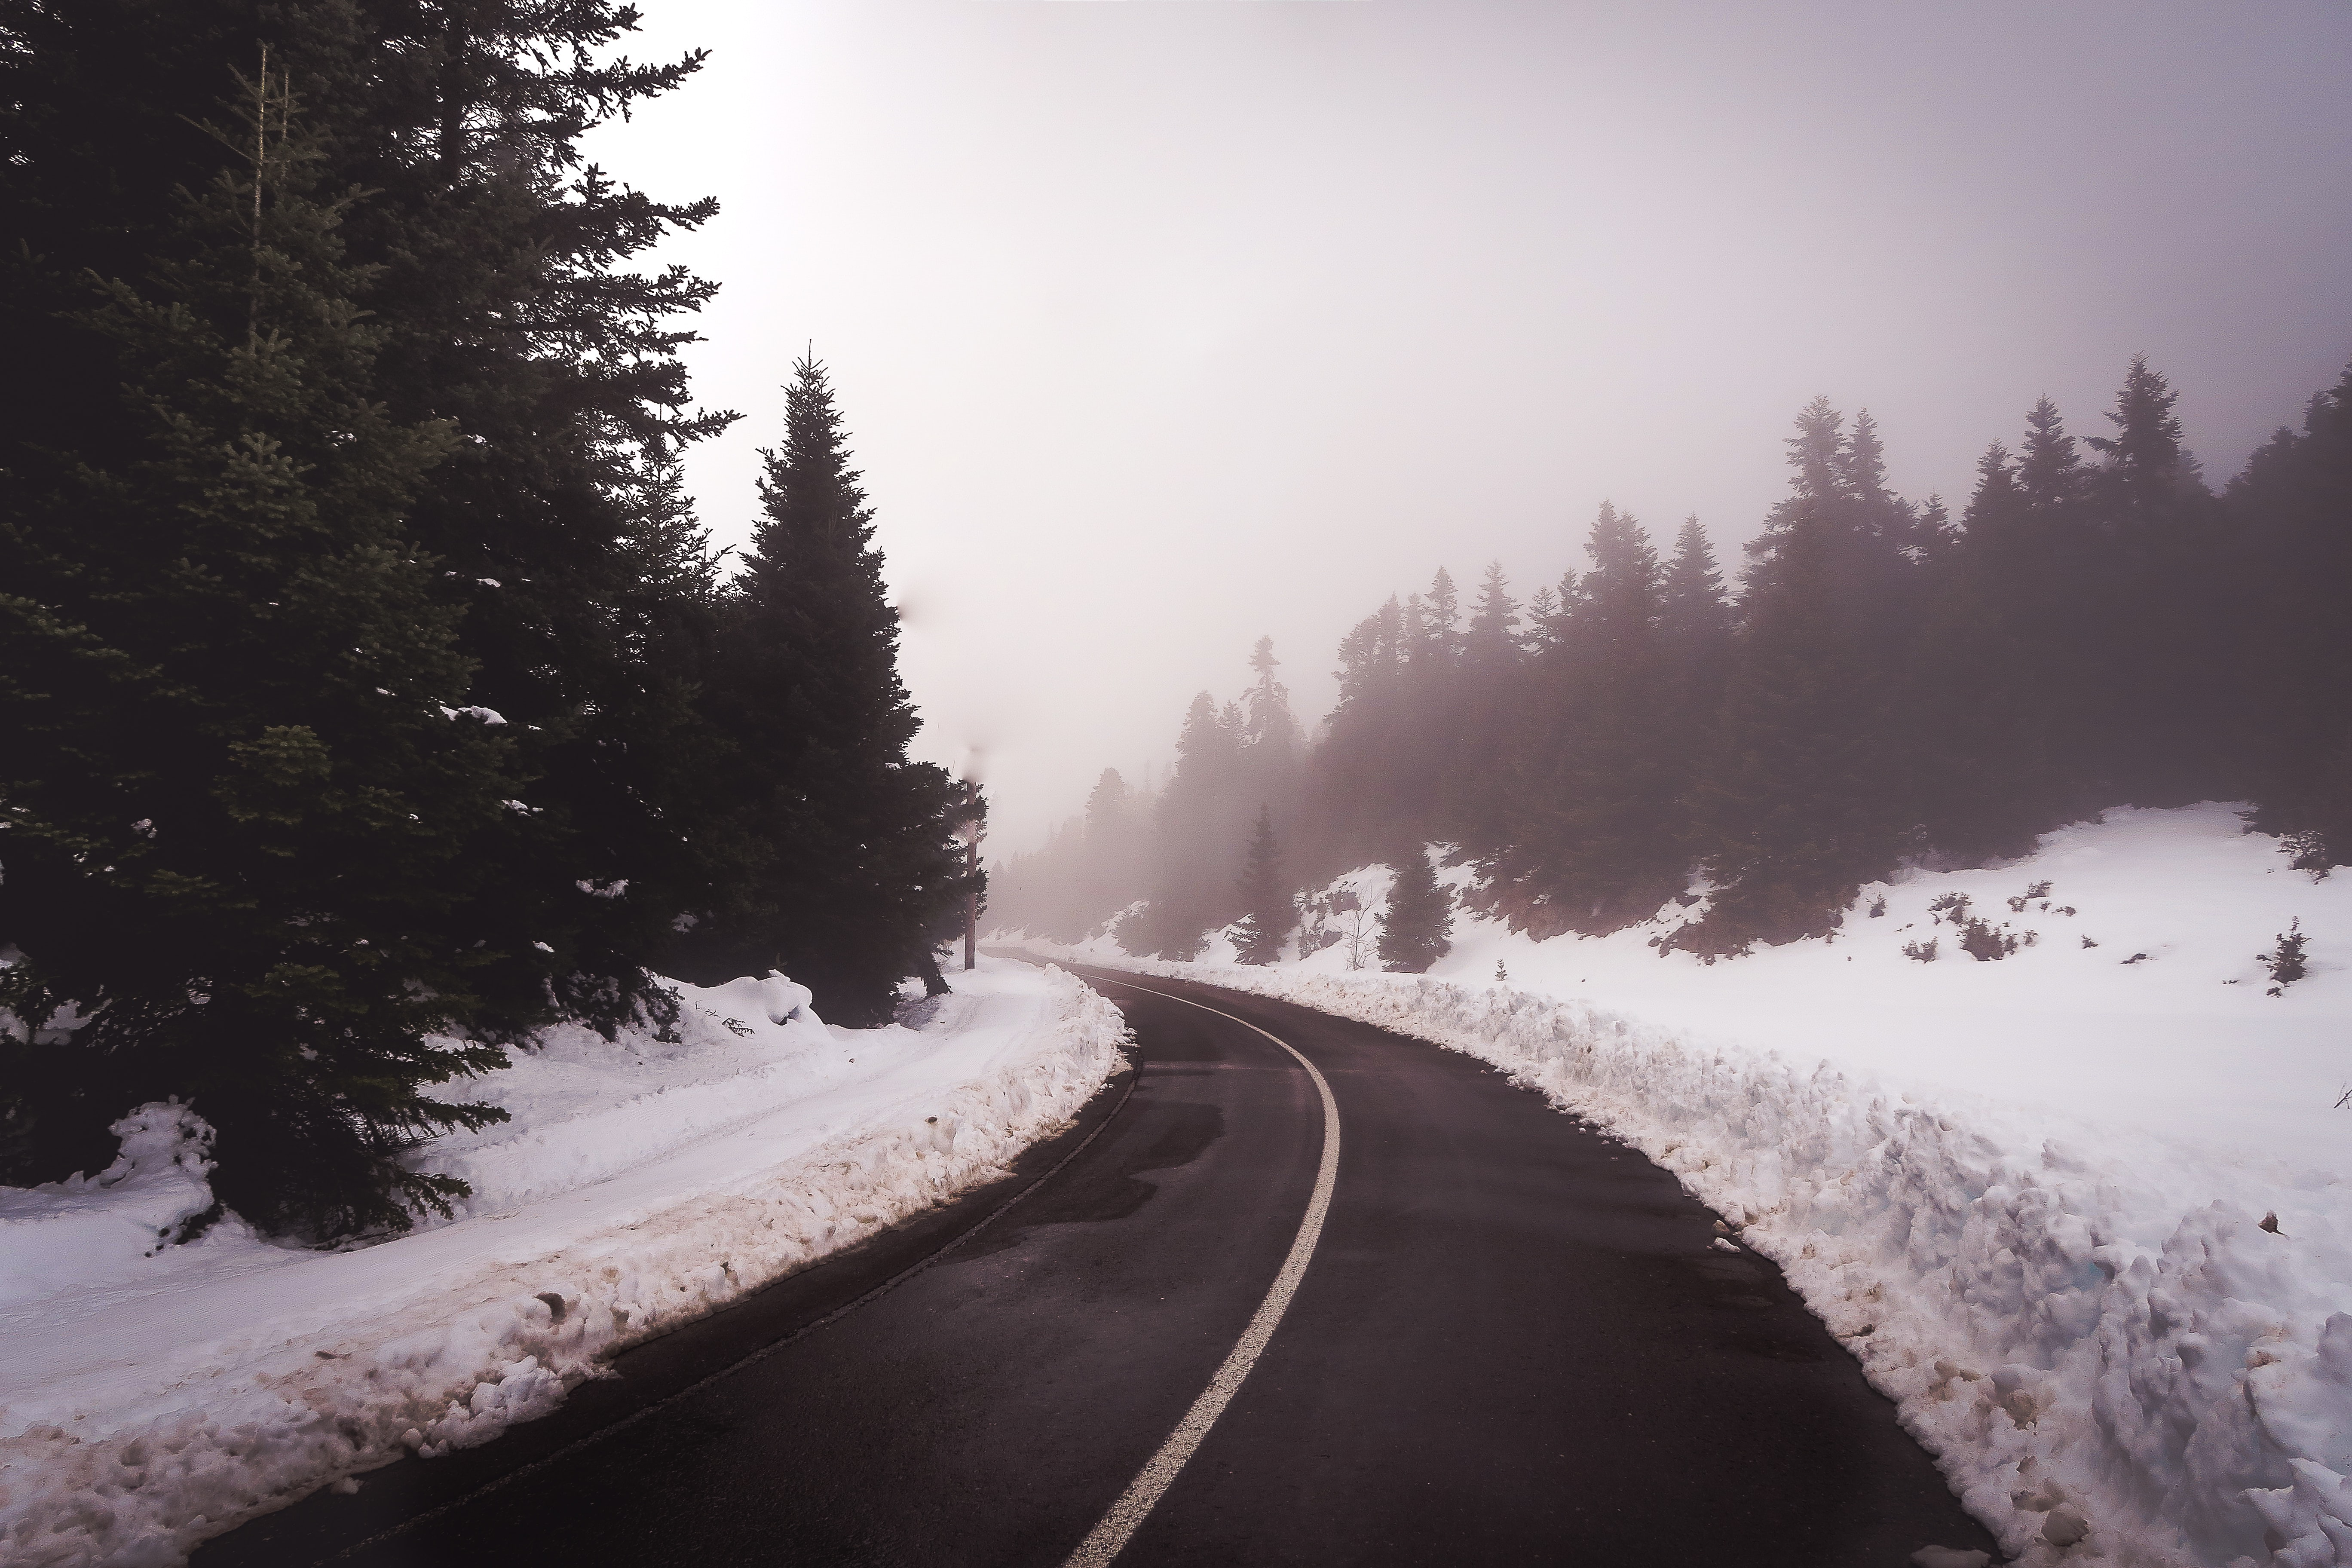 road near snow and trees